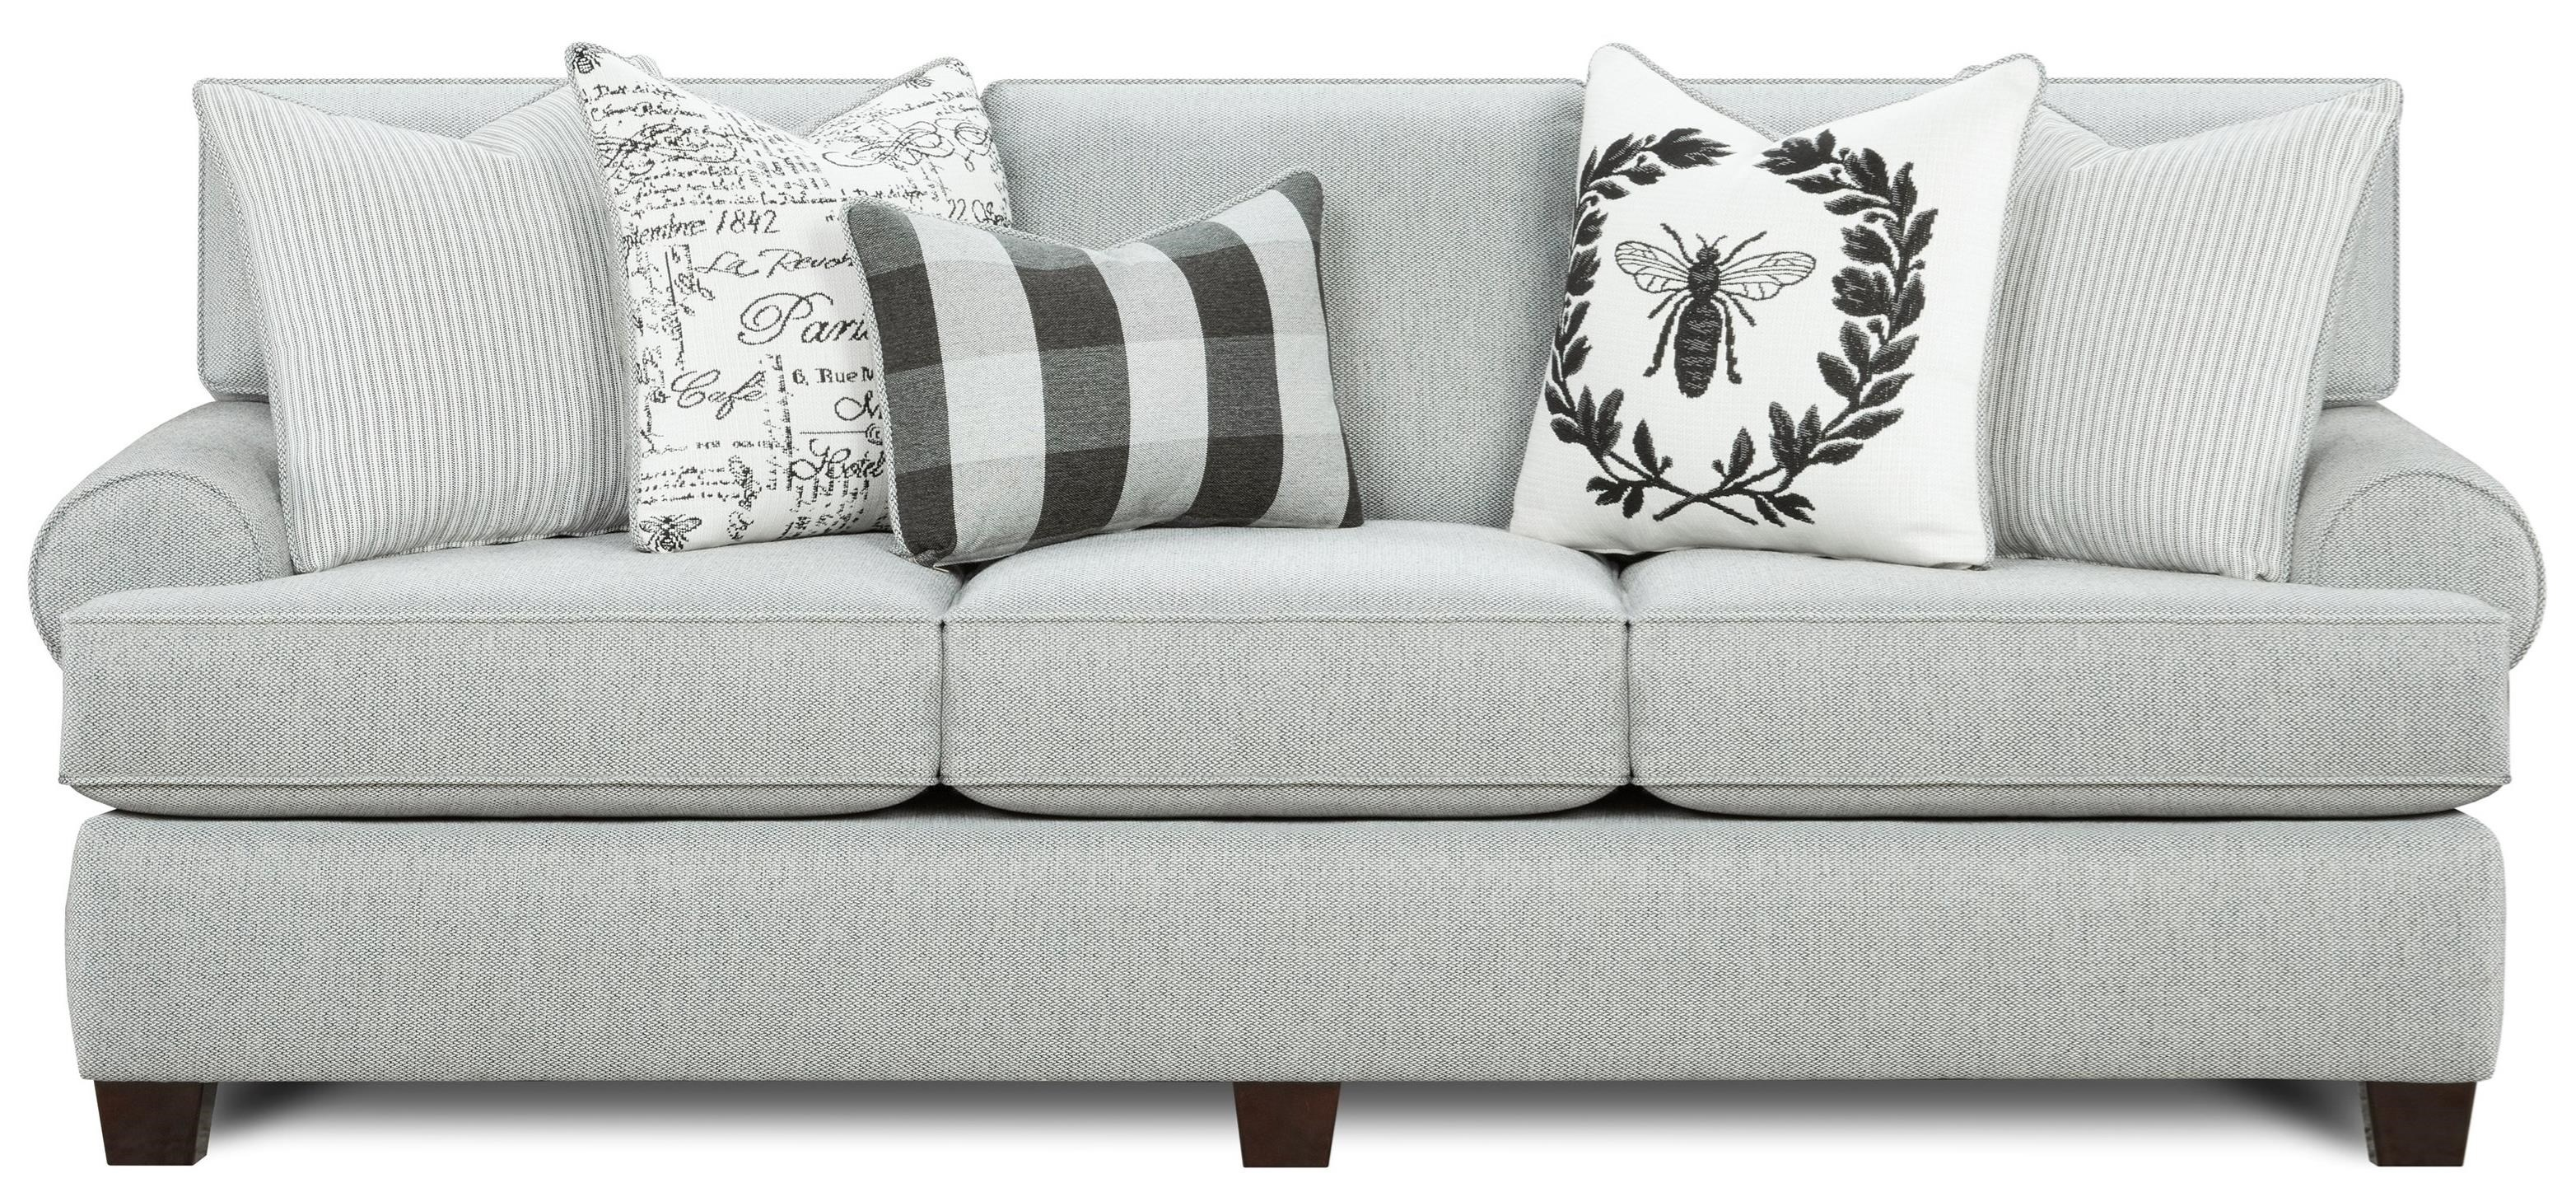 39-00 Sofa by FN at Lindy's Furniture Company